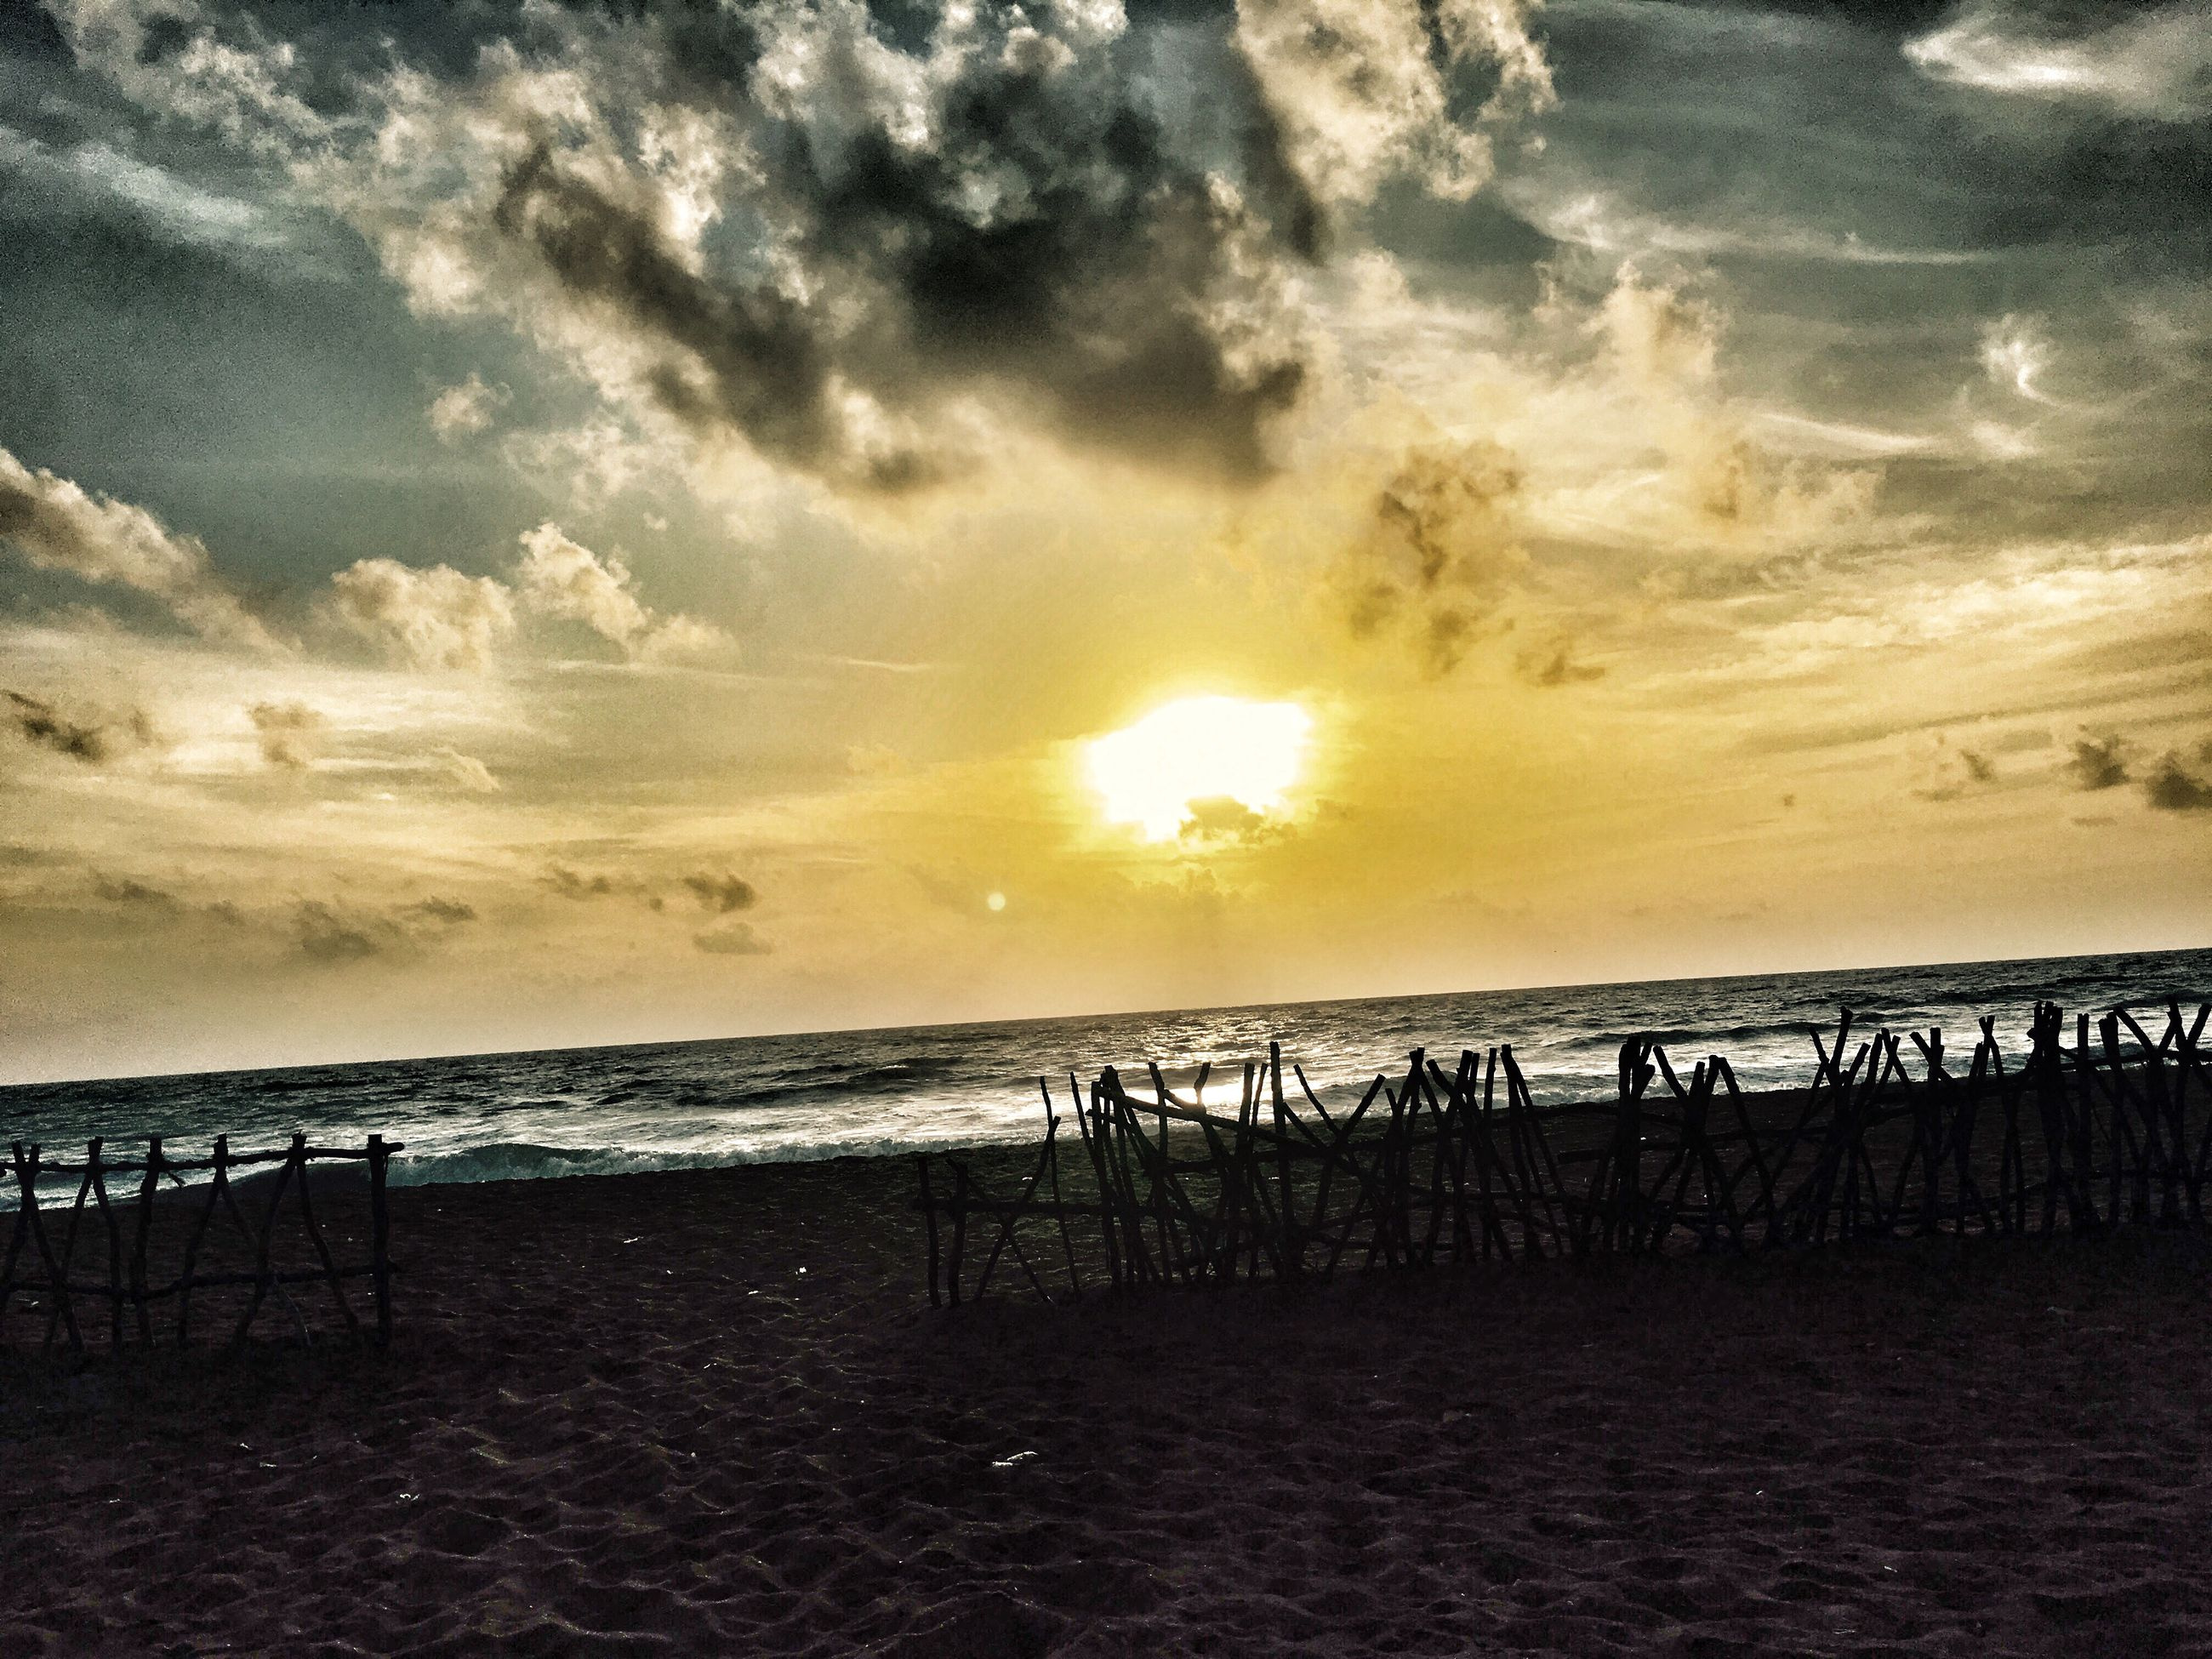 sky, sunset, sea, scenics, water, tranquility, cloud - sky, beauty in nature, beach, no people, nature, outdoors, tranquil scene, sun, horizon over water, day